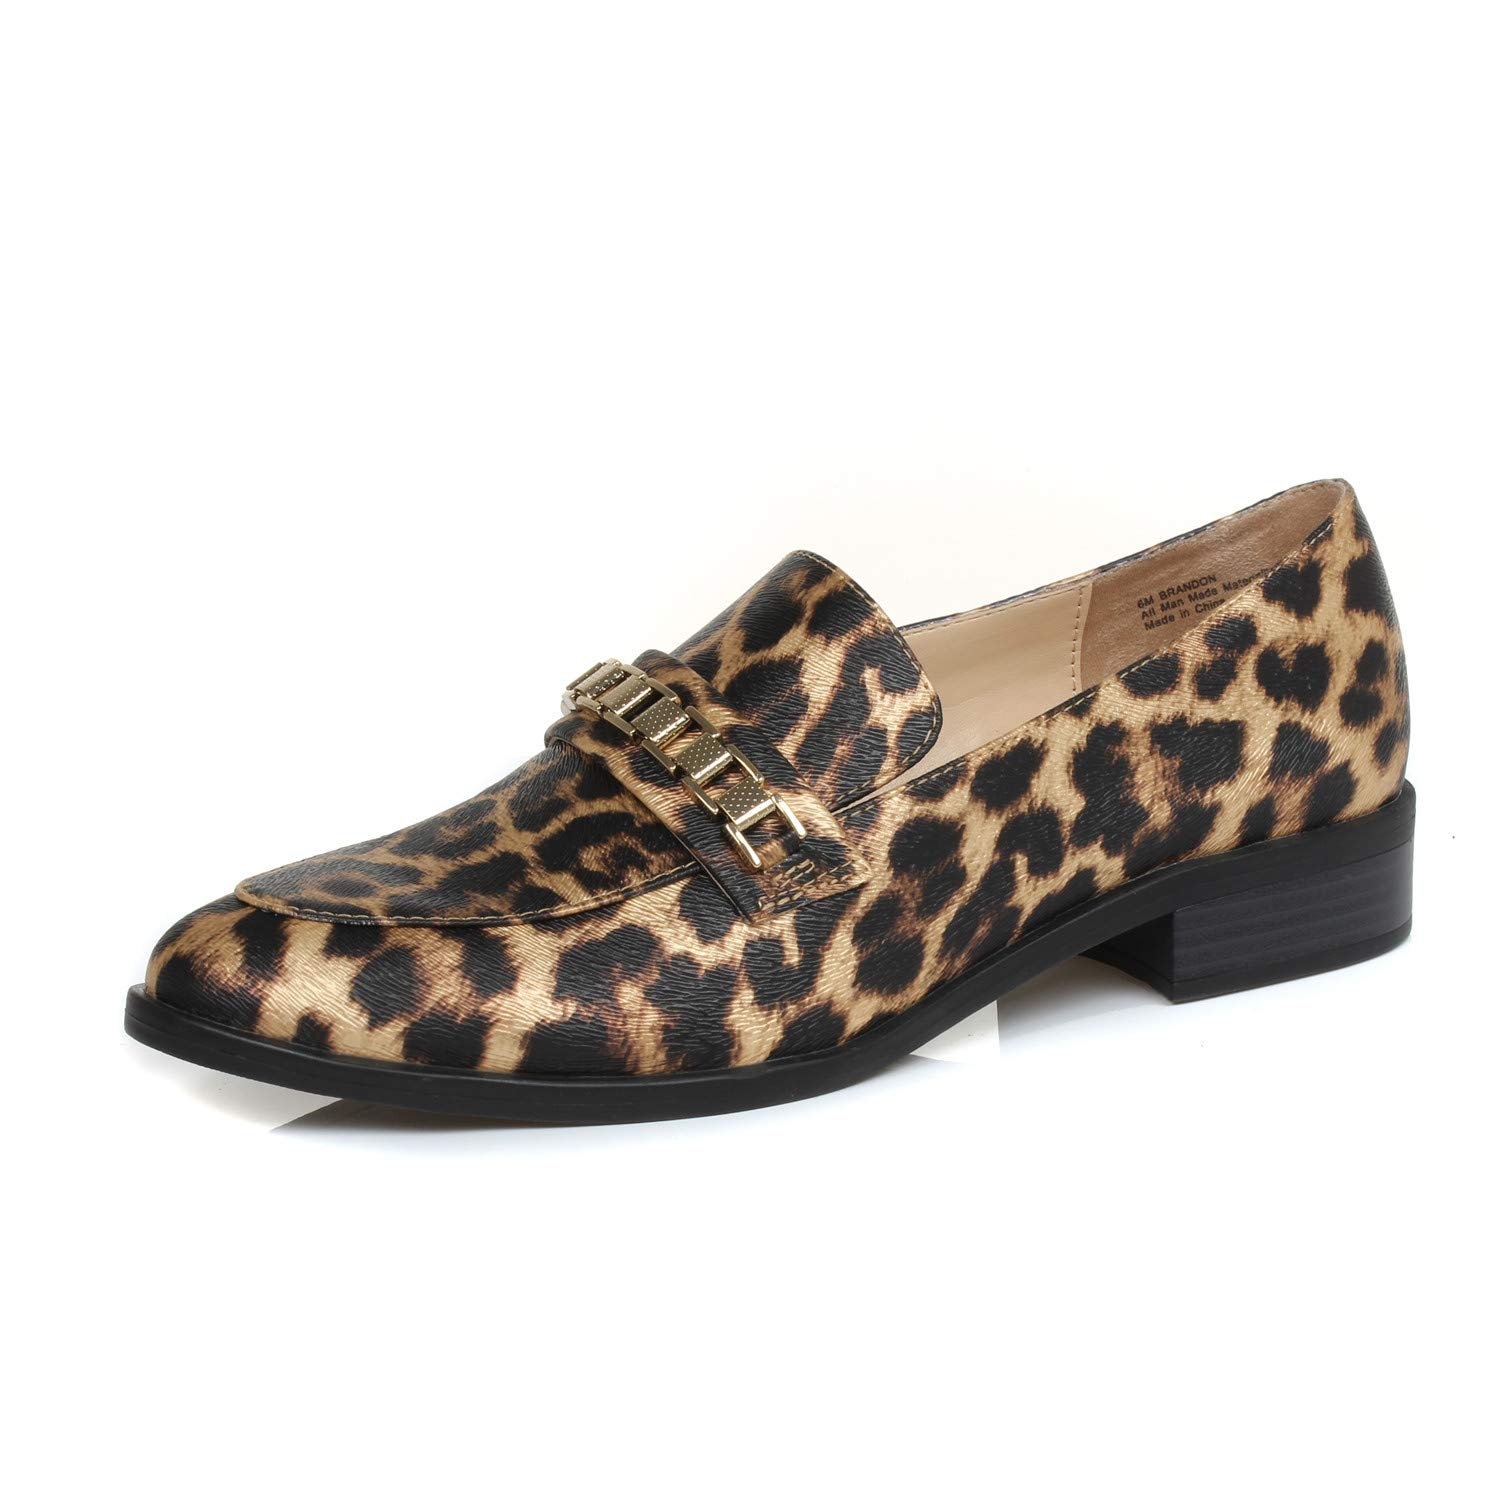 Brandon Light Leopard DUNION Women's Brandon Chain Decorated Penny Loafers Low Heels Almond Toe Casual Daily shoes